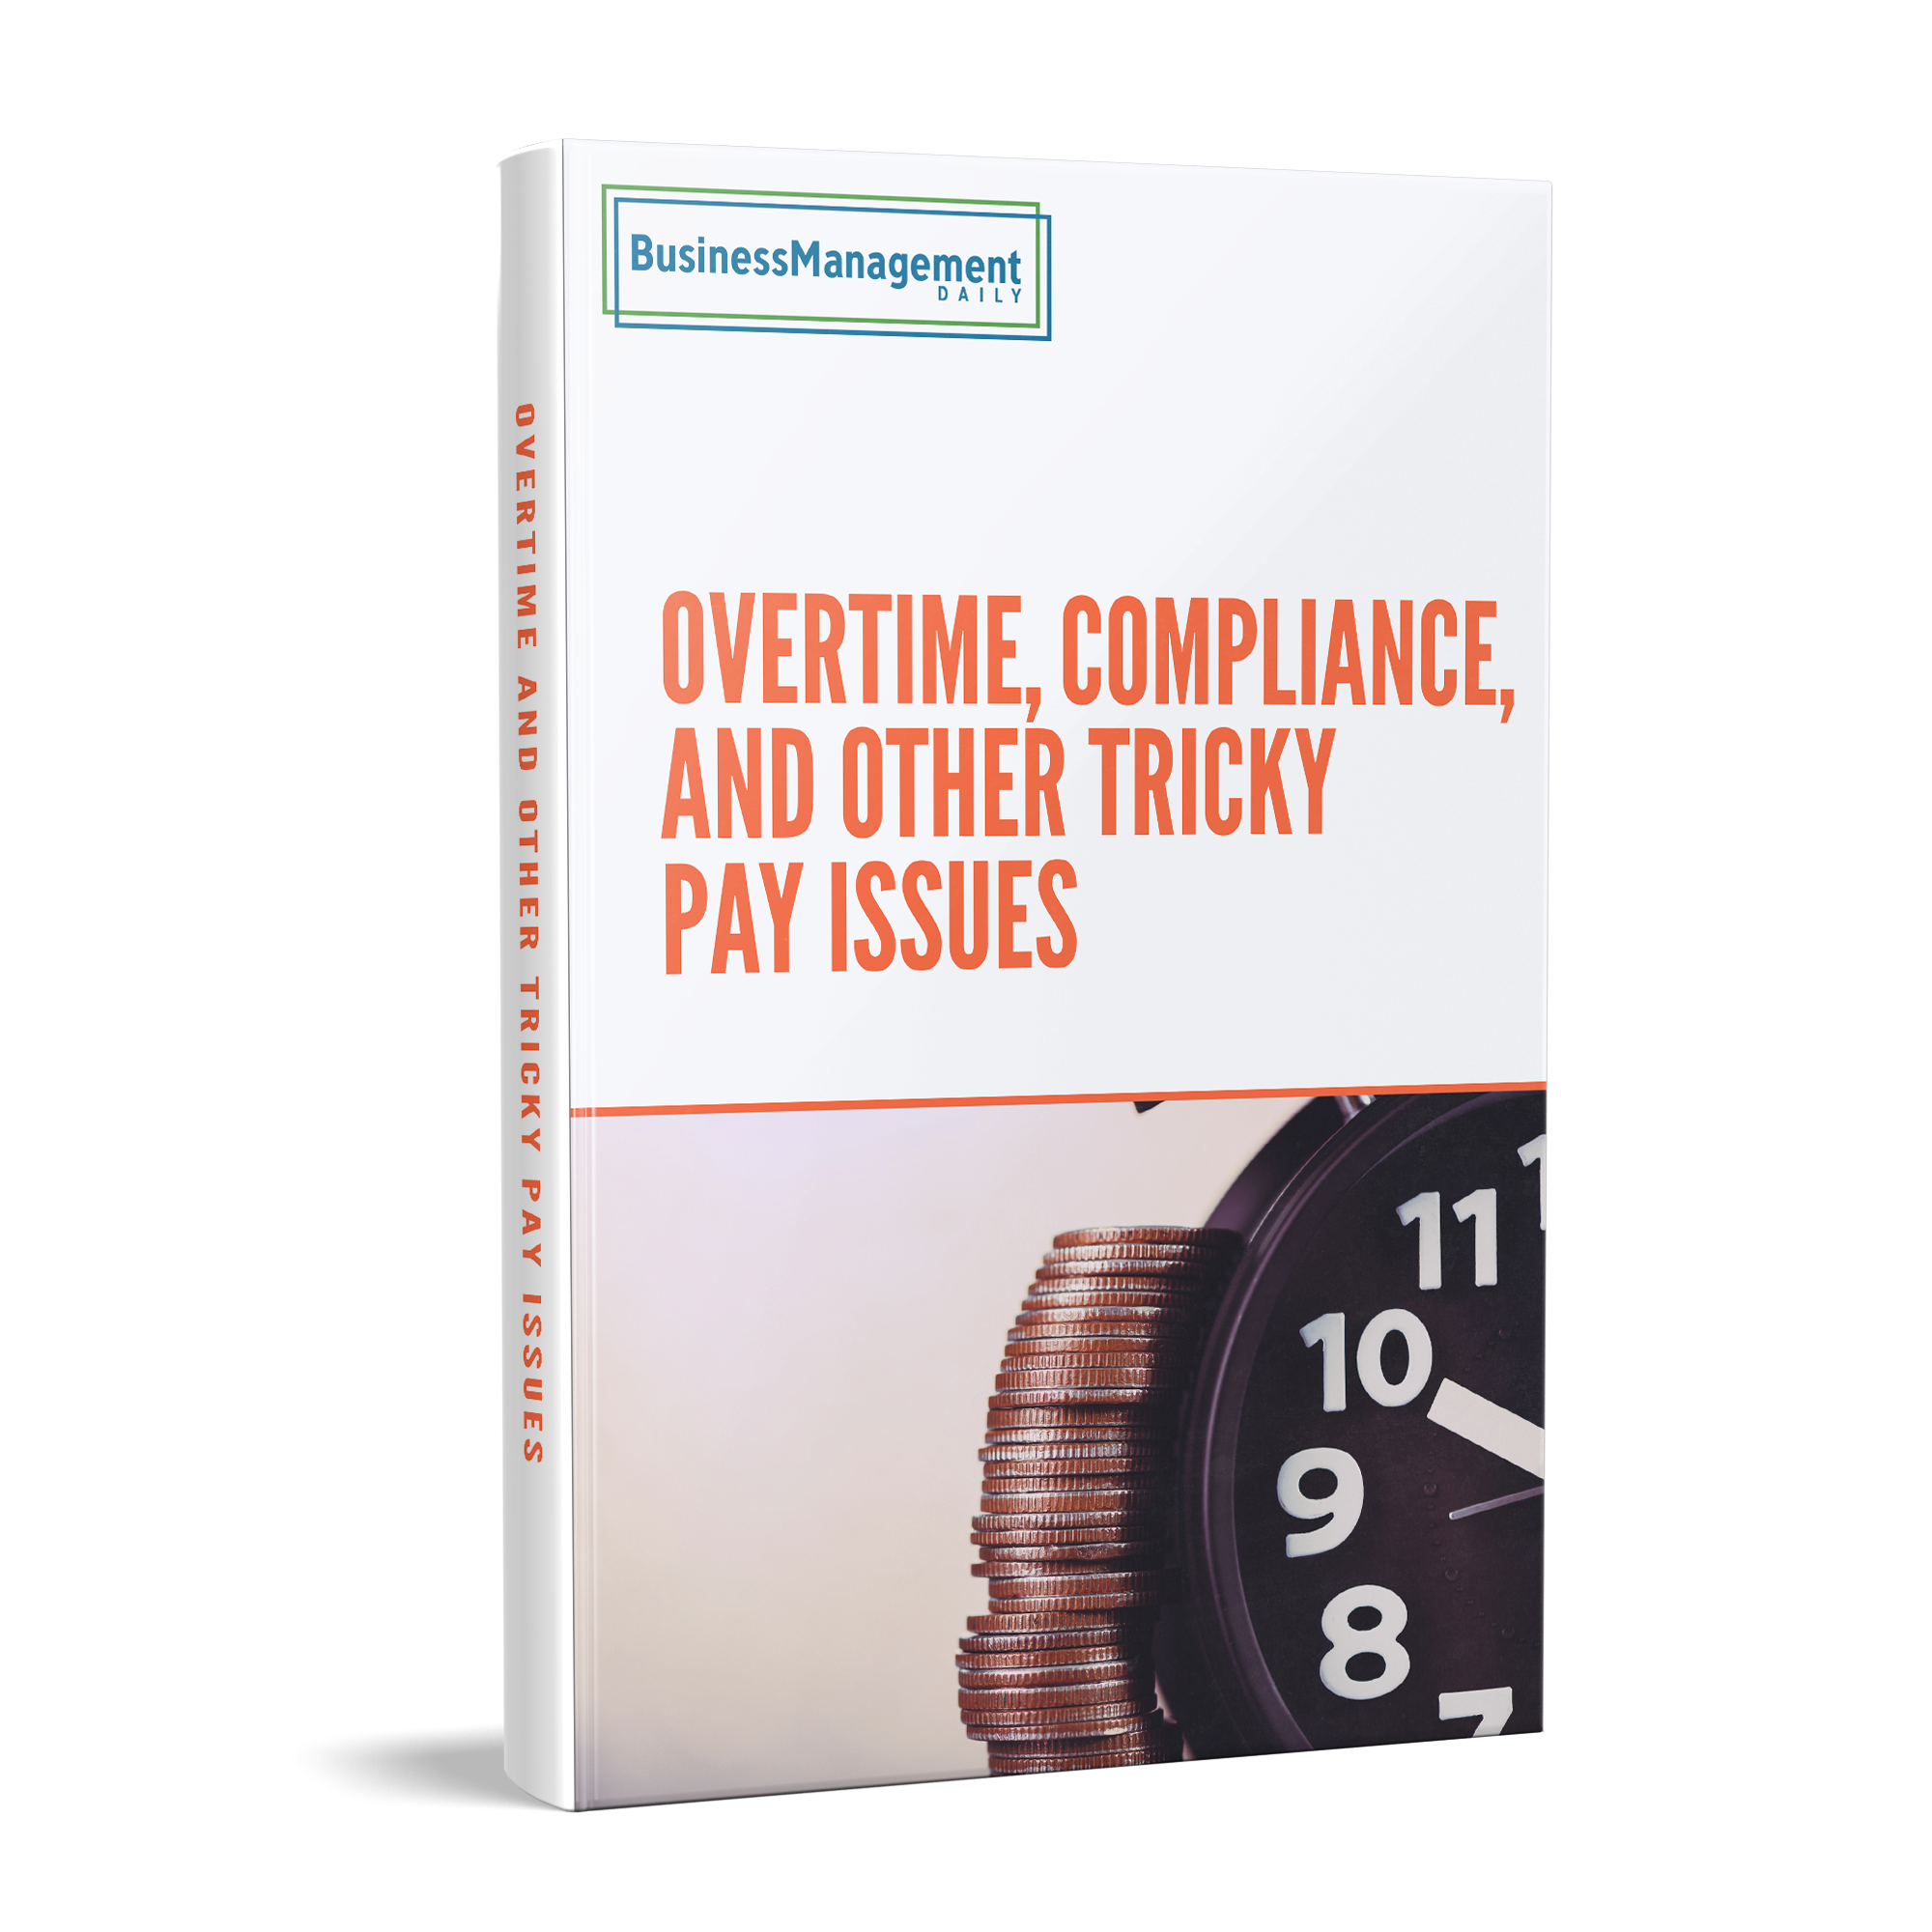 Overtime, Compliance, and Other Tricky Pay Issues Book